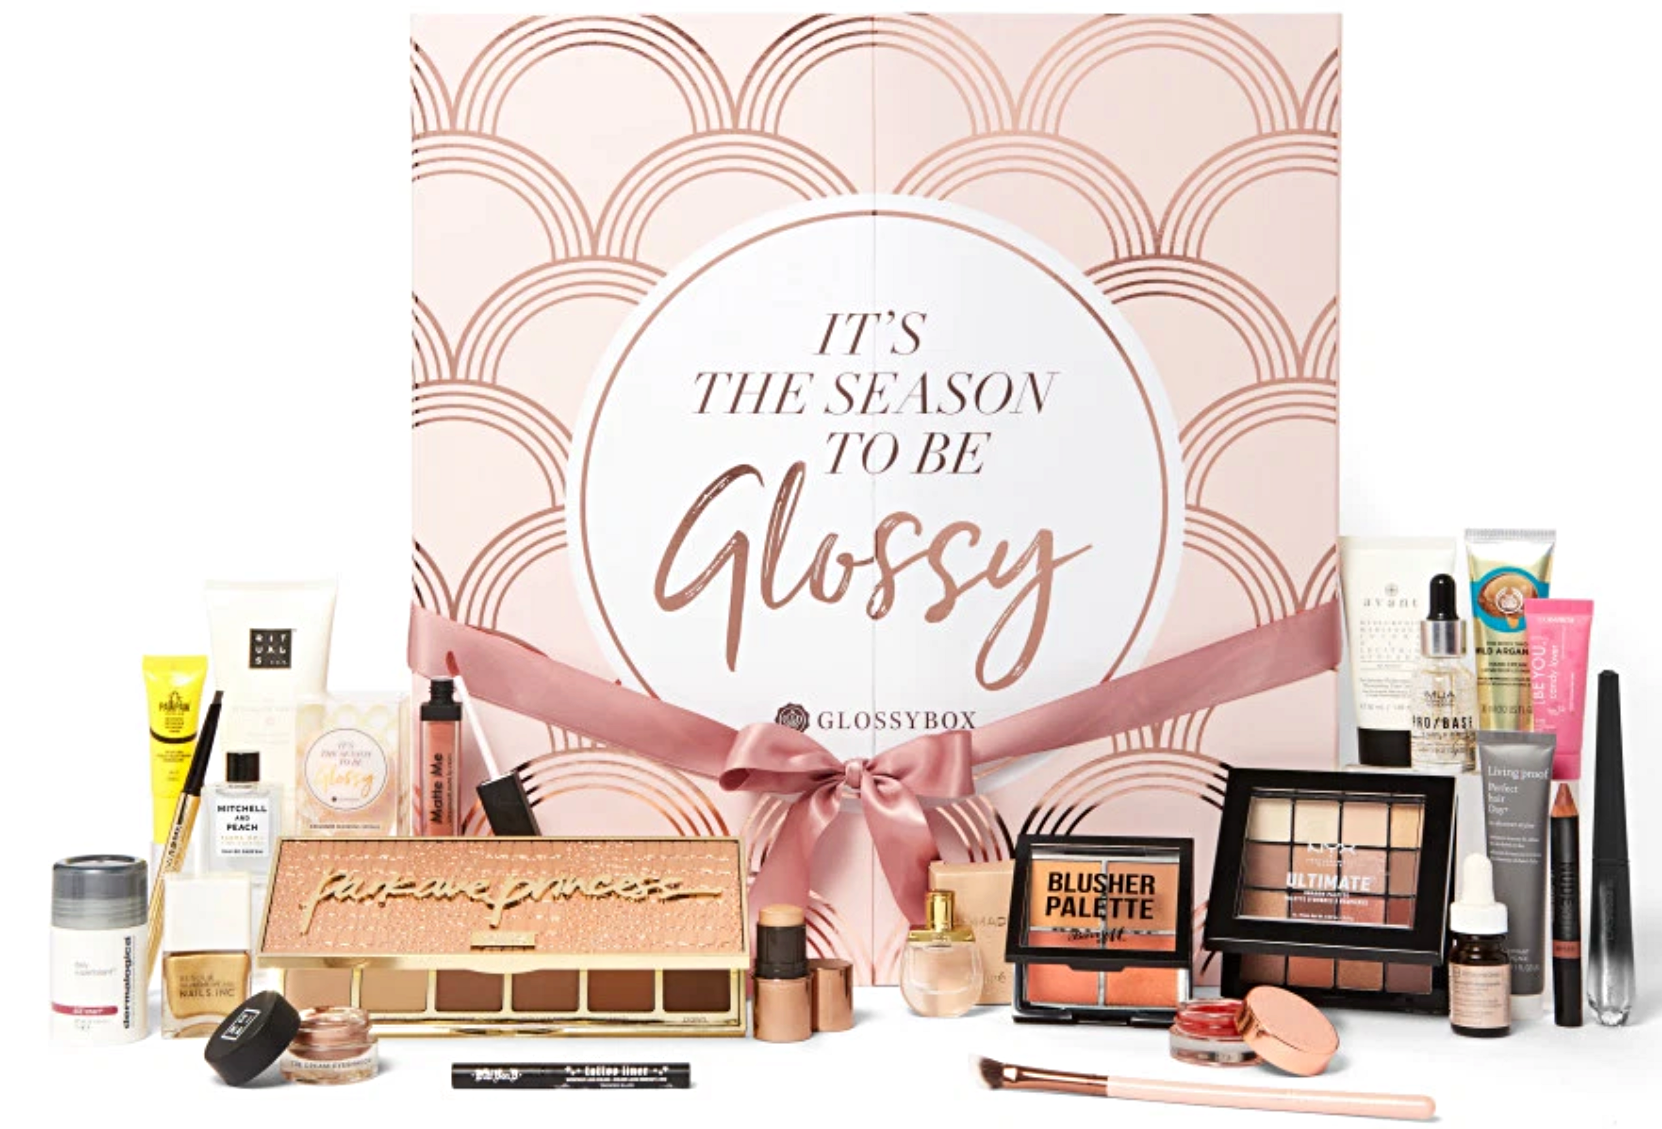 Glossybox advent calendar contents